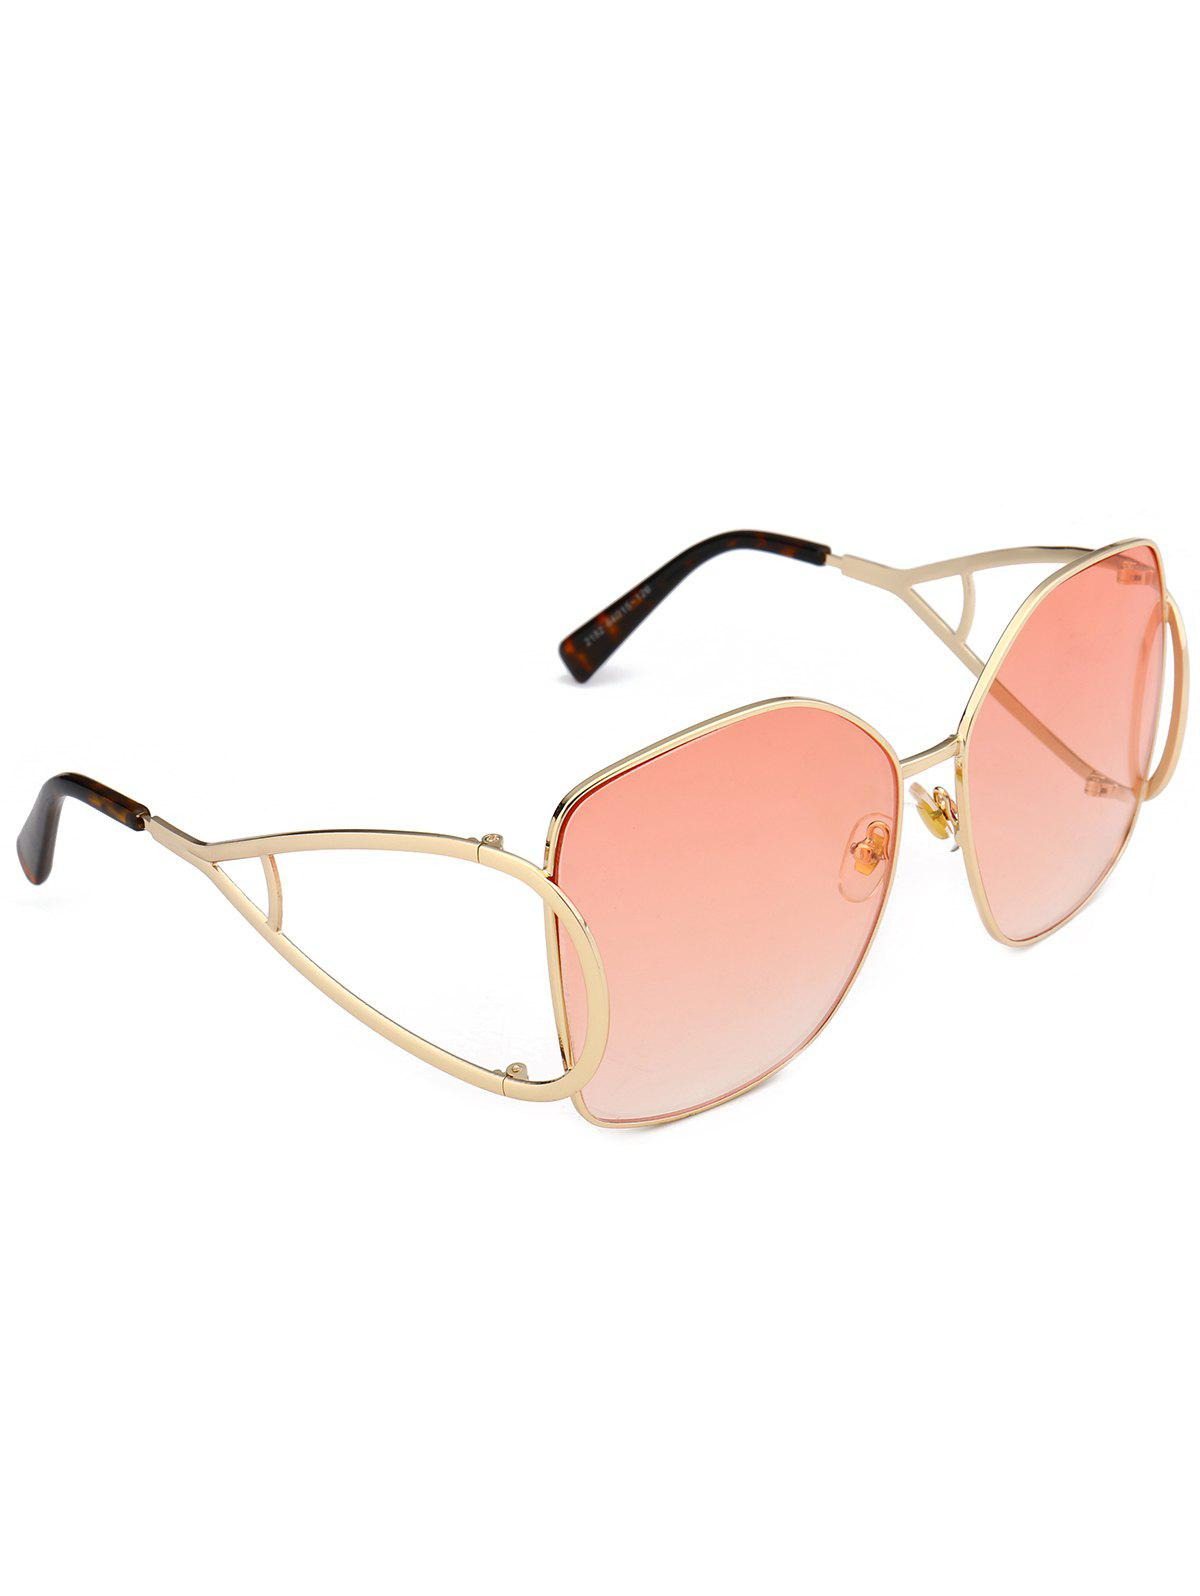 Vintage Hollow Out Decorated Full Frame Oversized Sunglasses - LIGHT PINK